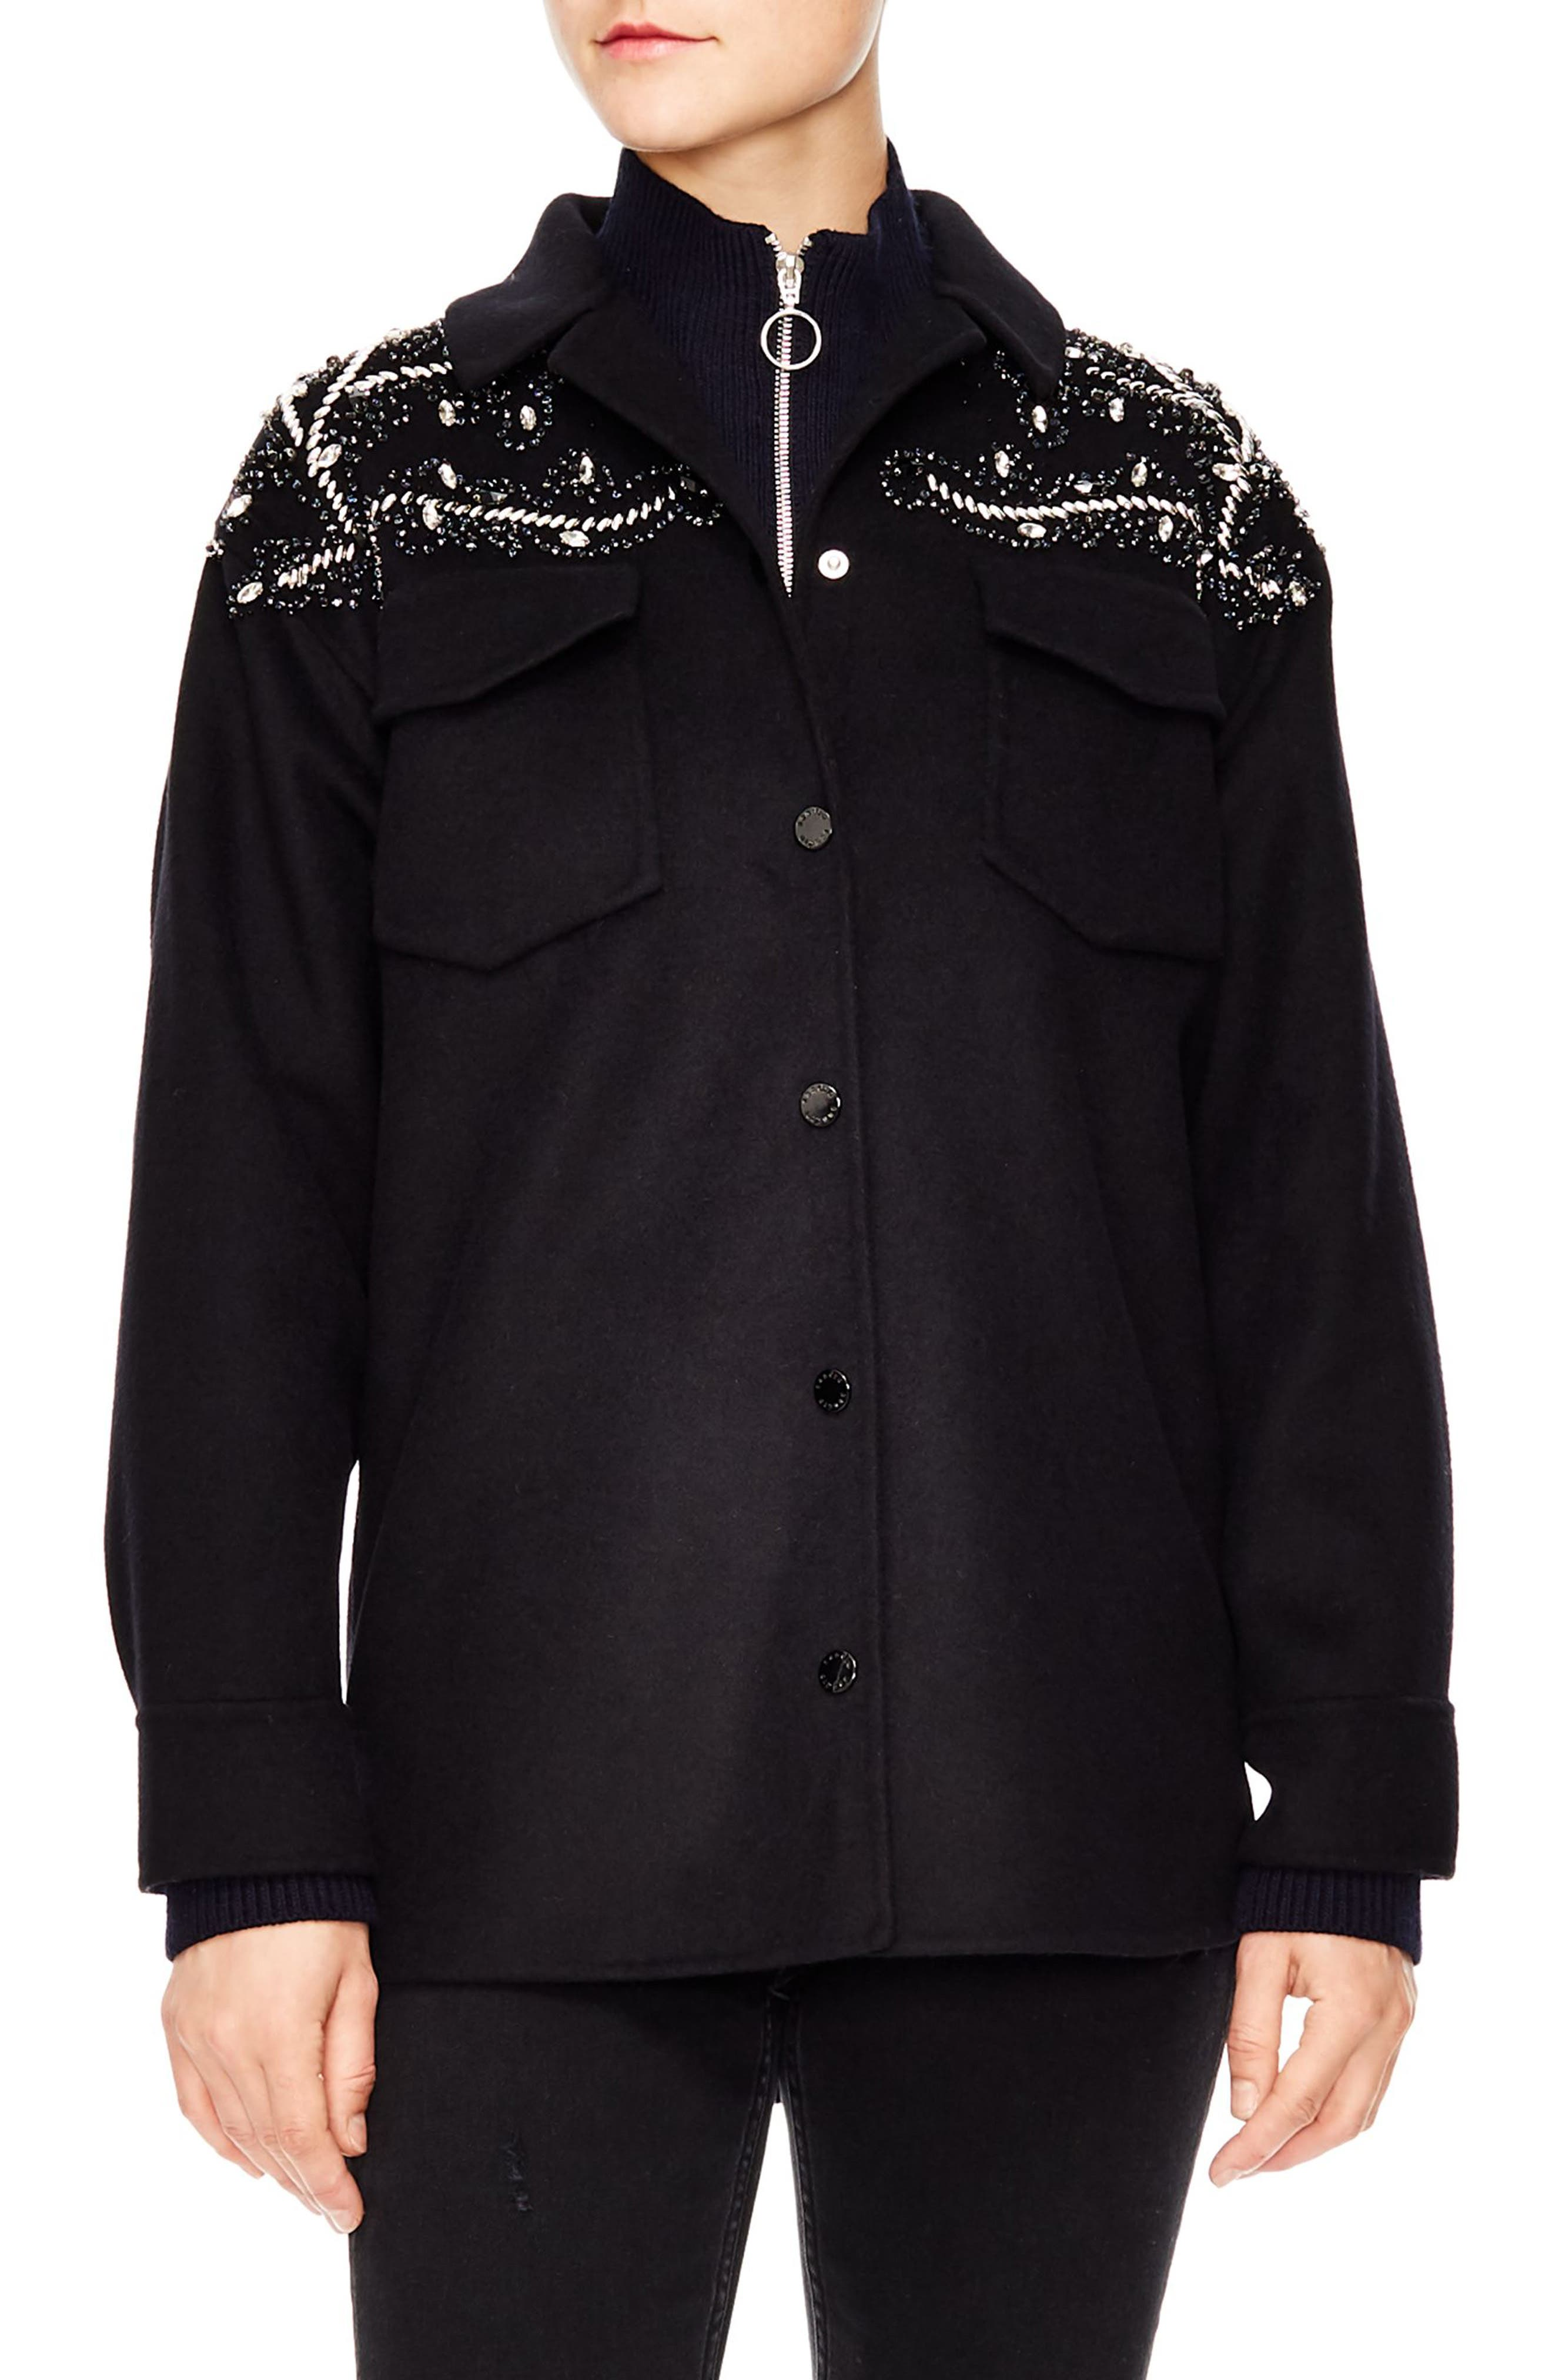 Notting Hill Versaille Sequin & Beaded Jacket in Black